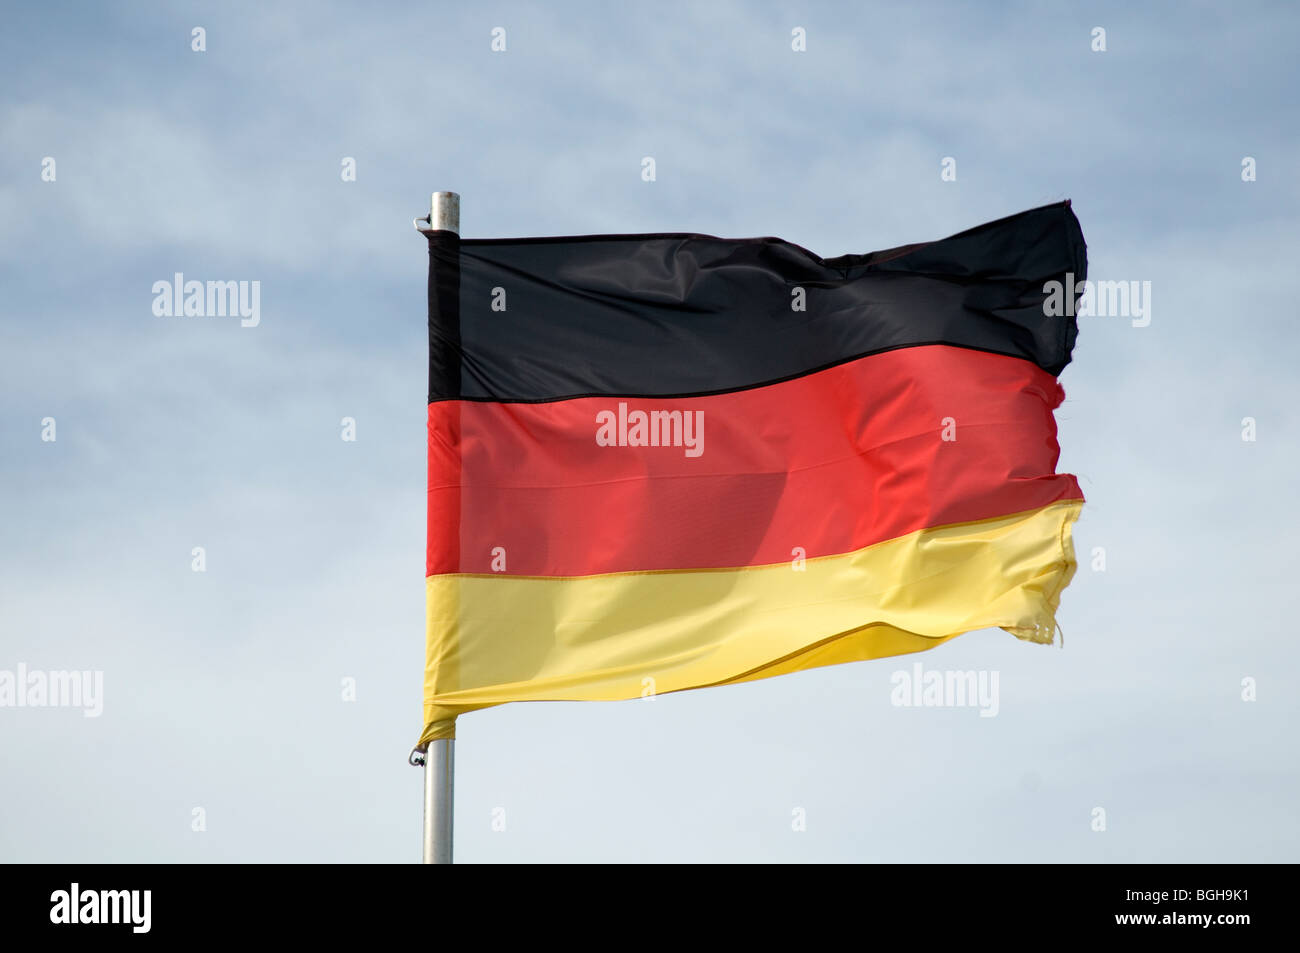 german flag germany flags tricolor deutschland deutsch pole flagpole national pride bluesky sky skies blue - Stock Image